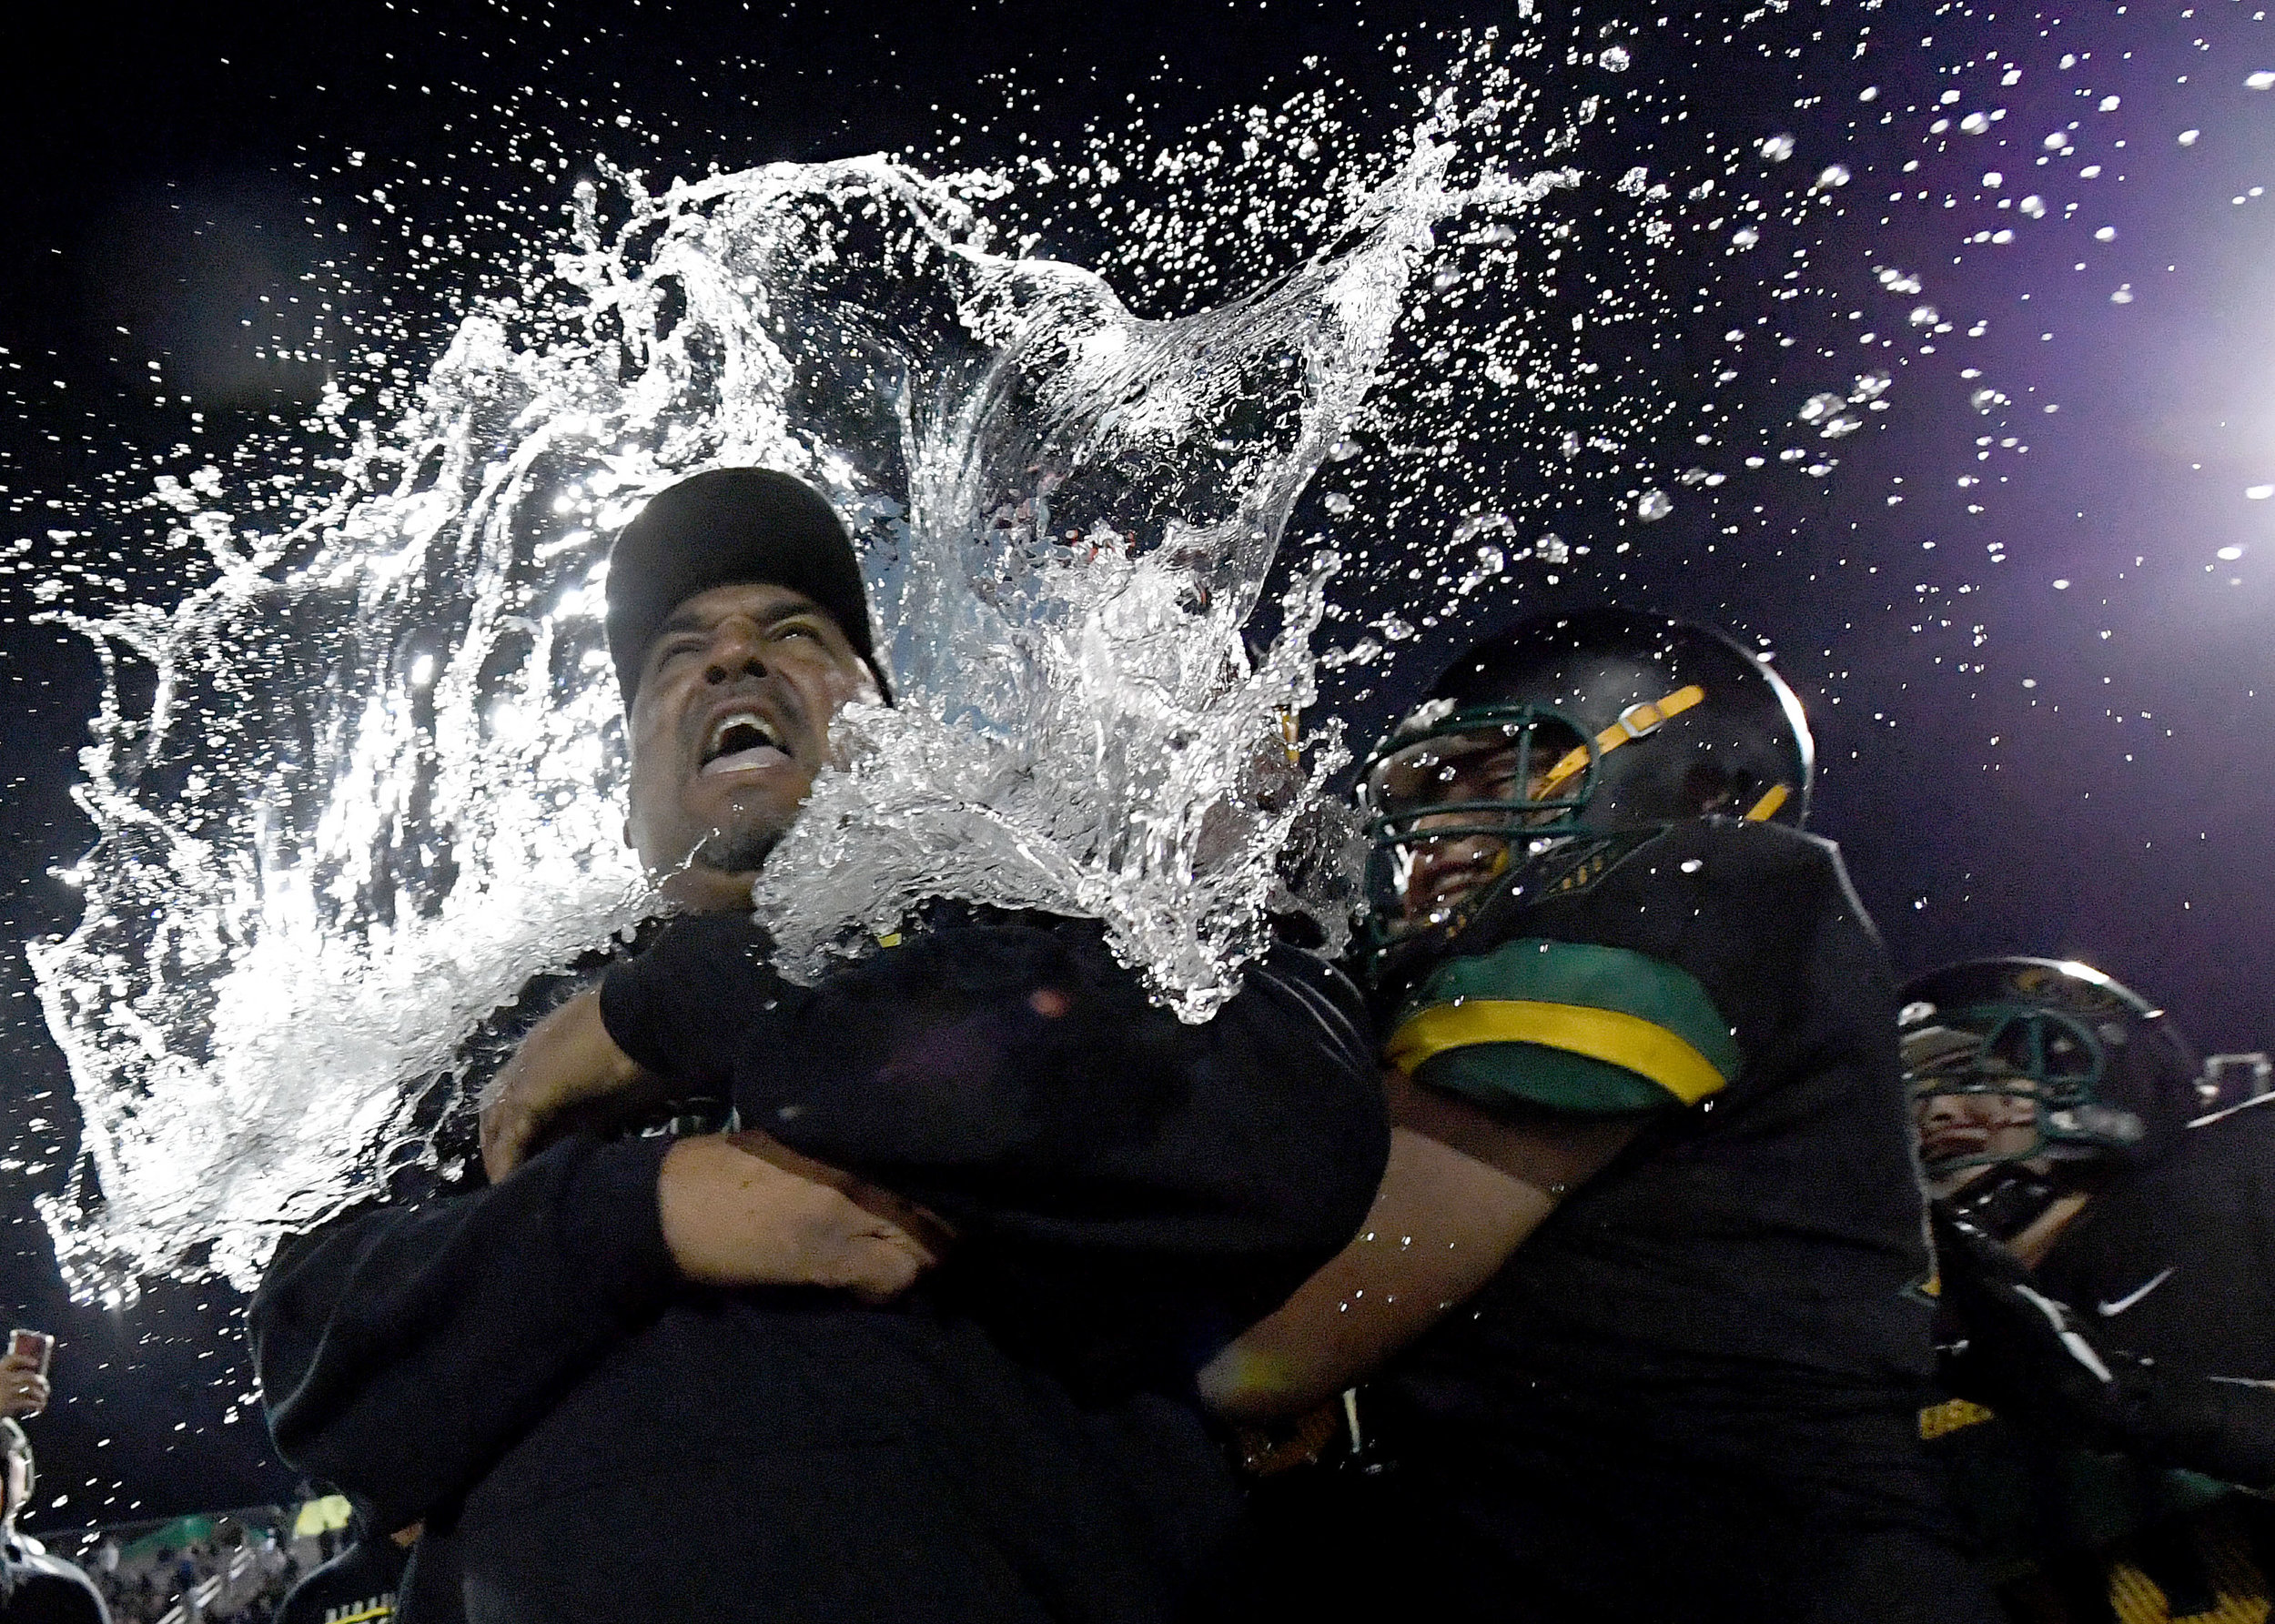 Eisenhower head coach Al Brown gets drenched with water by his players after defeating Highland 35-18 in Rialto, Saturday night November 24, 2018 after winning the CIF Division 10 prep football championship.